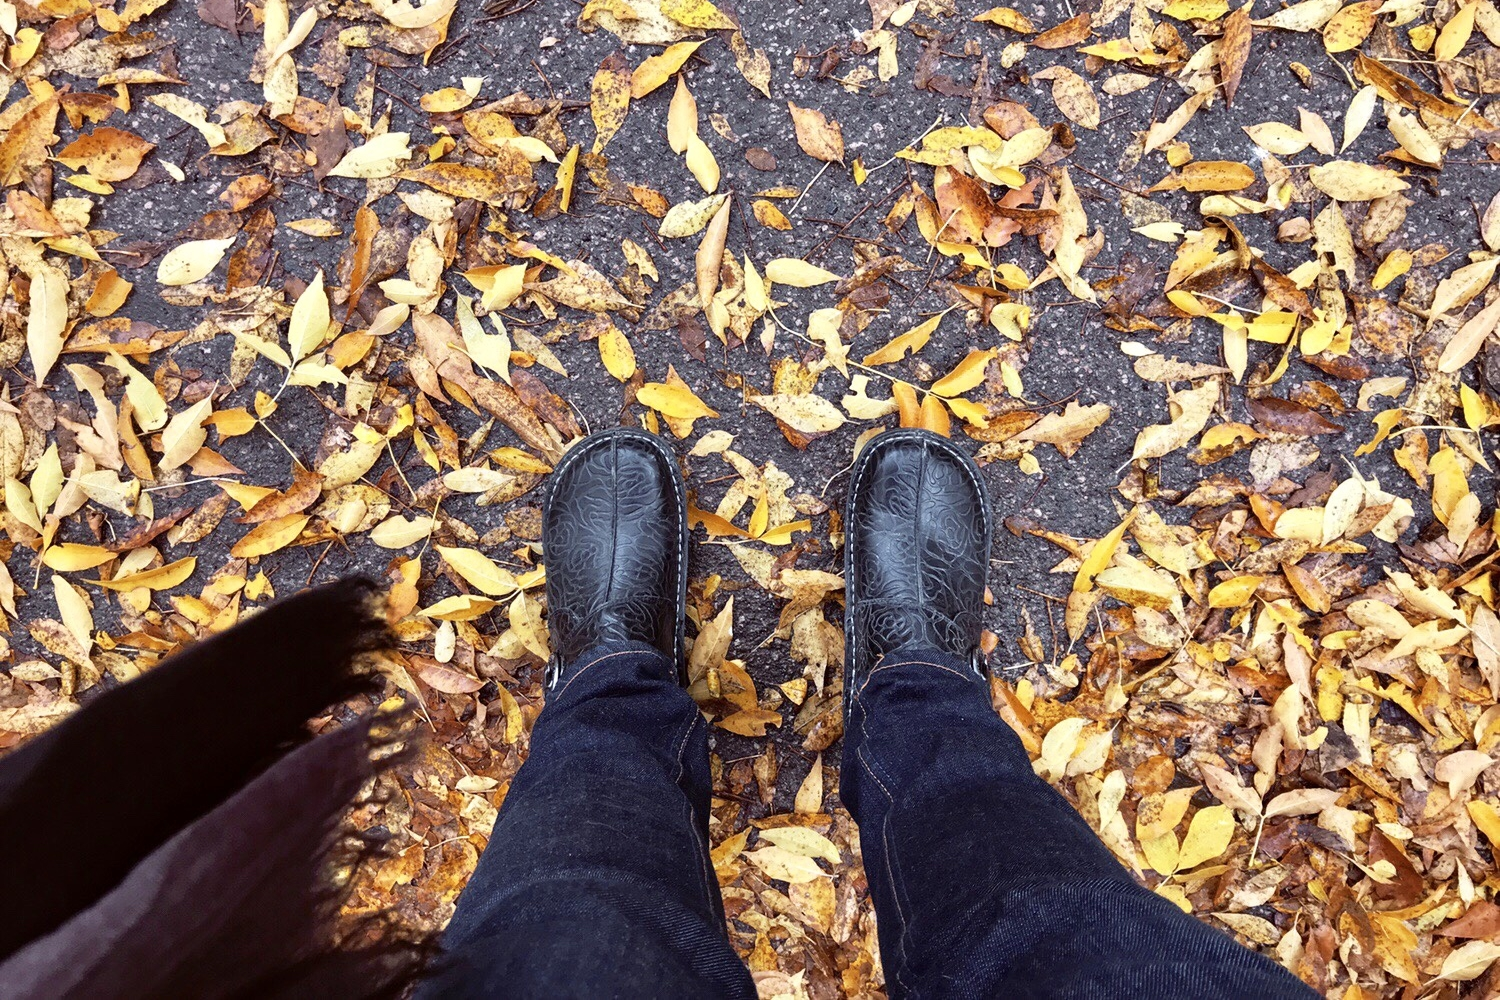 looking down at legs and feet in boots standing on fall leaves on asphalt